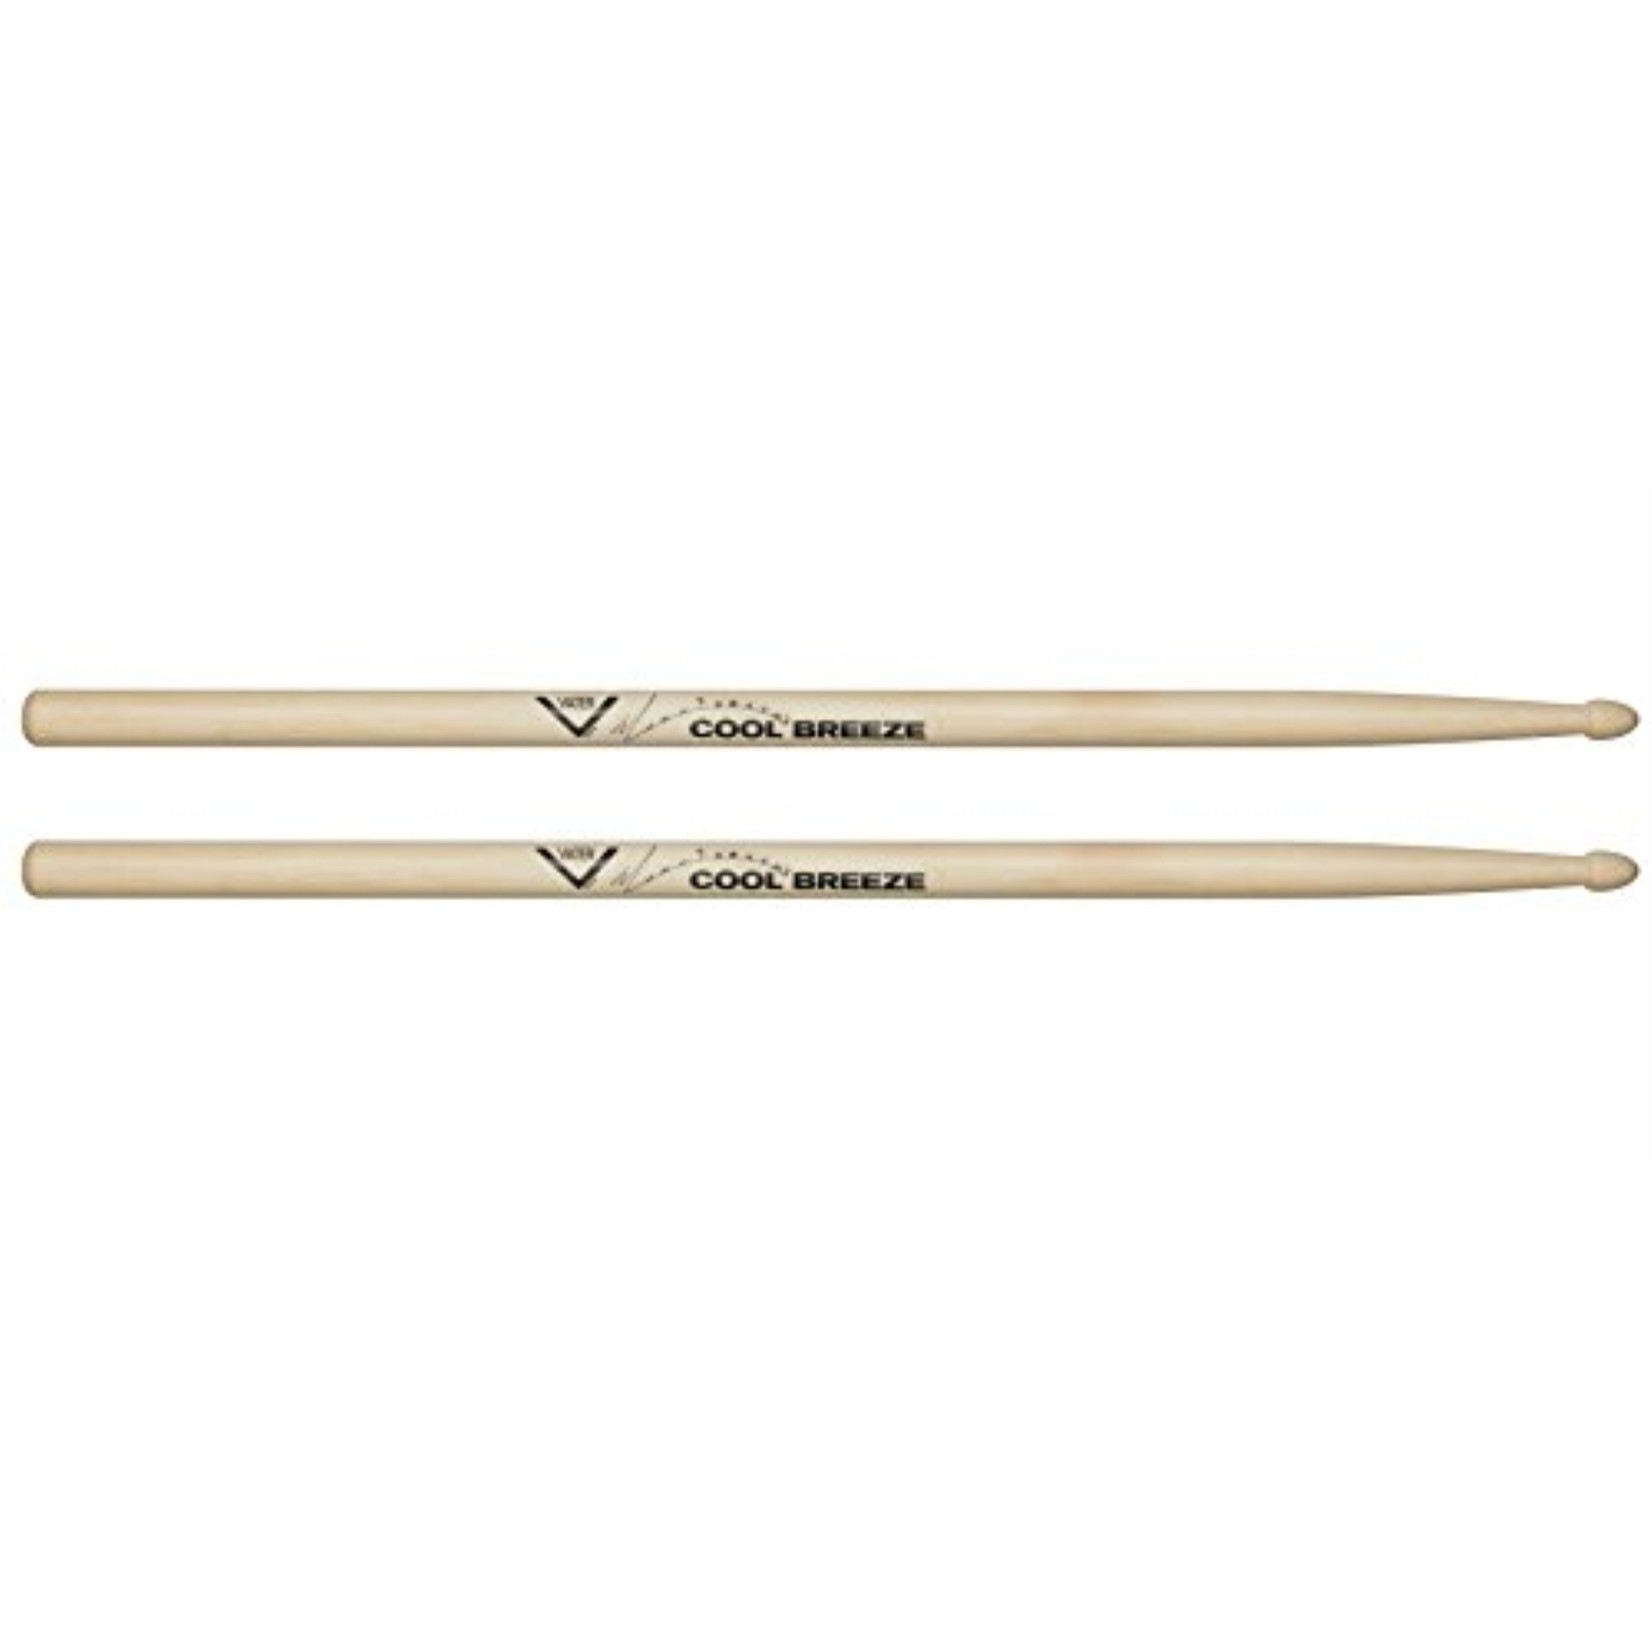 Vater Vater Abe Cunningham's Cool Breeze